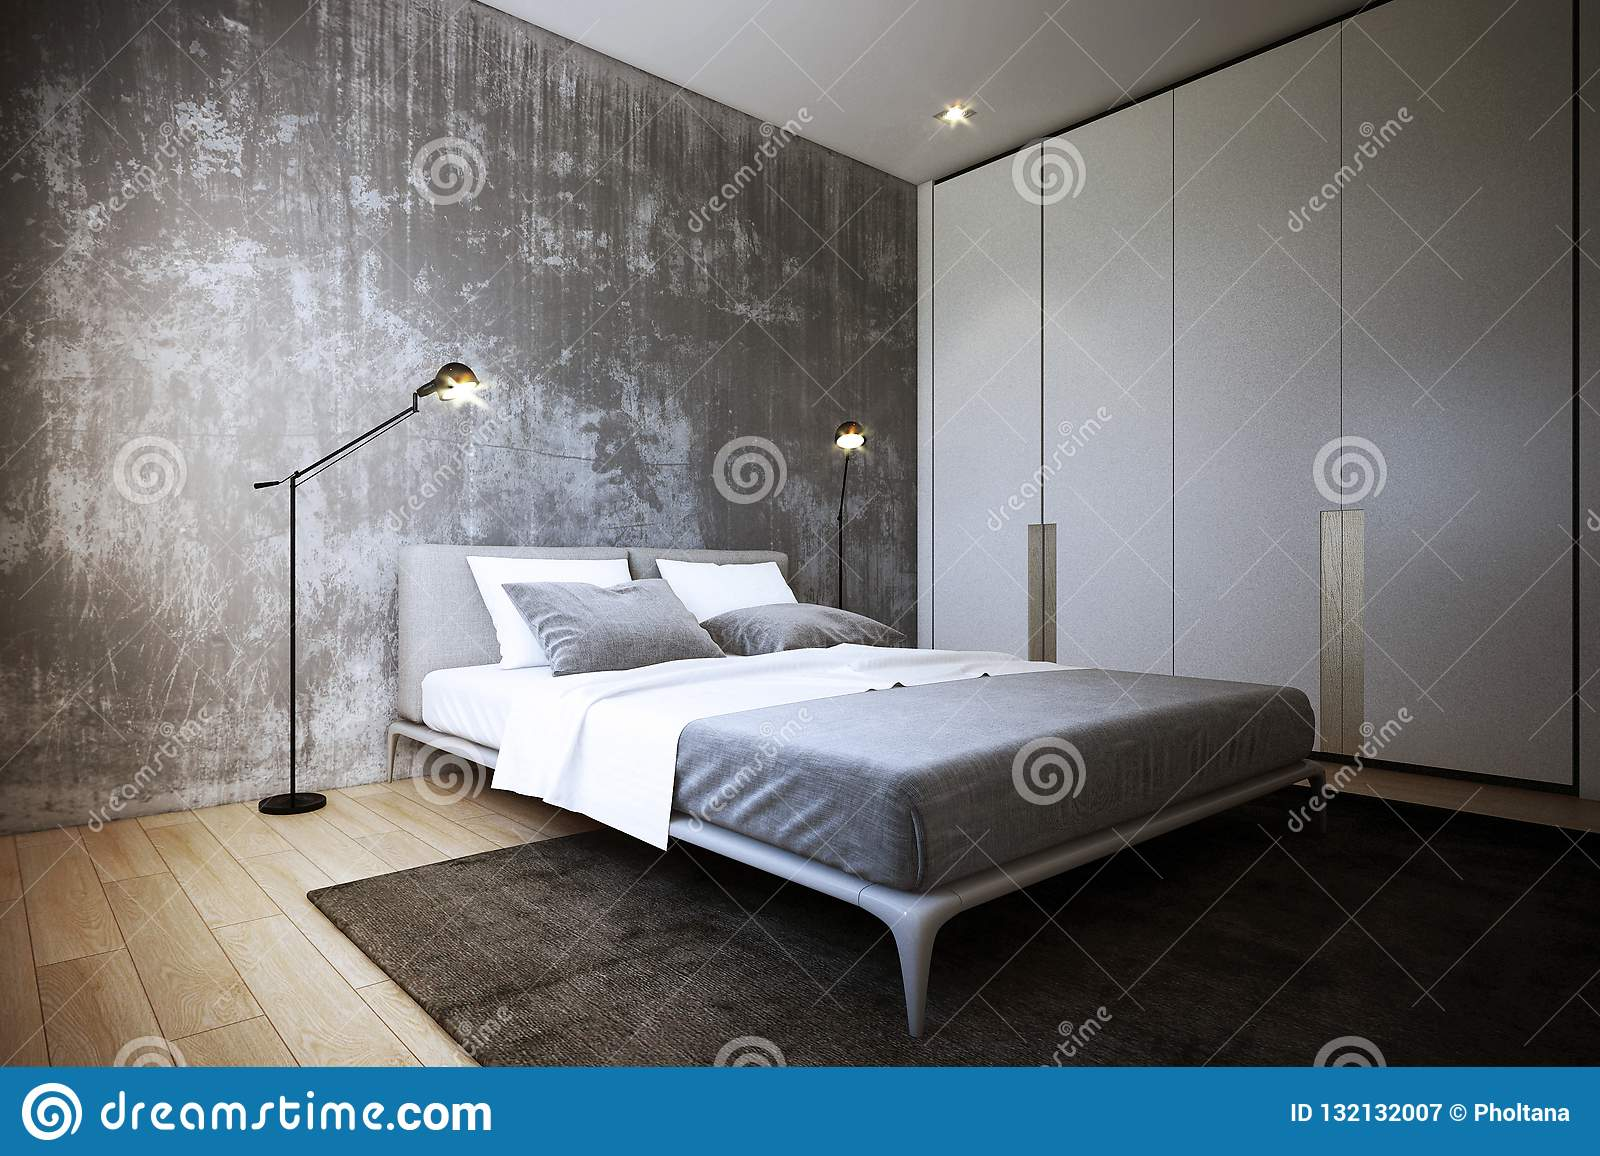 Commode Chambre Style Industriel the bedroom design ,interior of industrial style, 3d